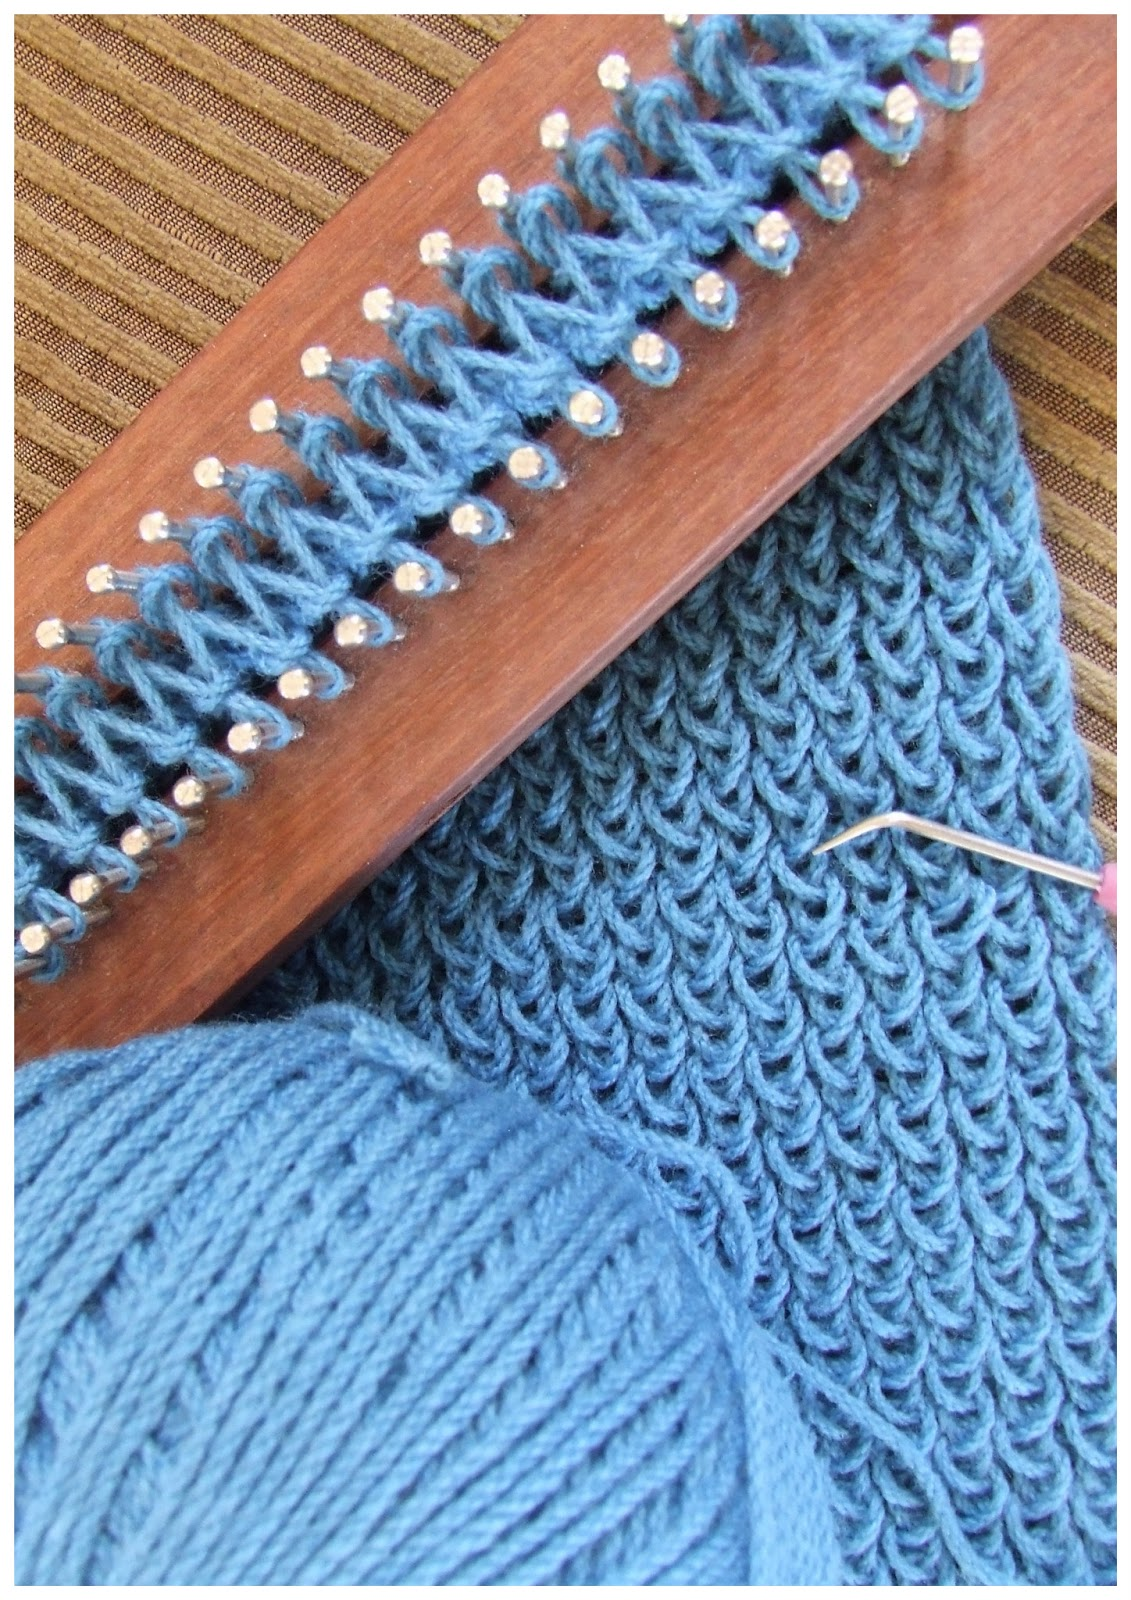 Knit Stitch On A Long Loom : FitzBirch Crafts: Loom Knitting